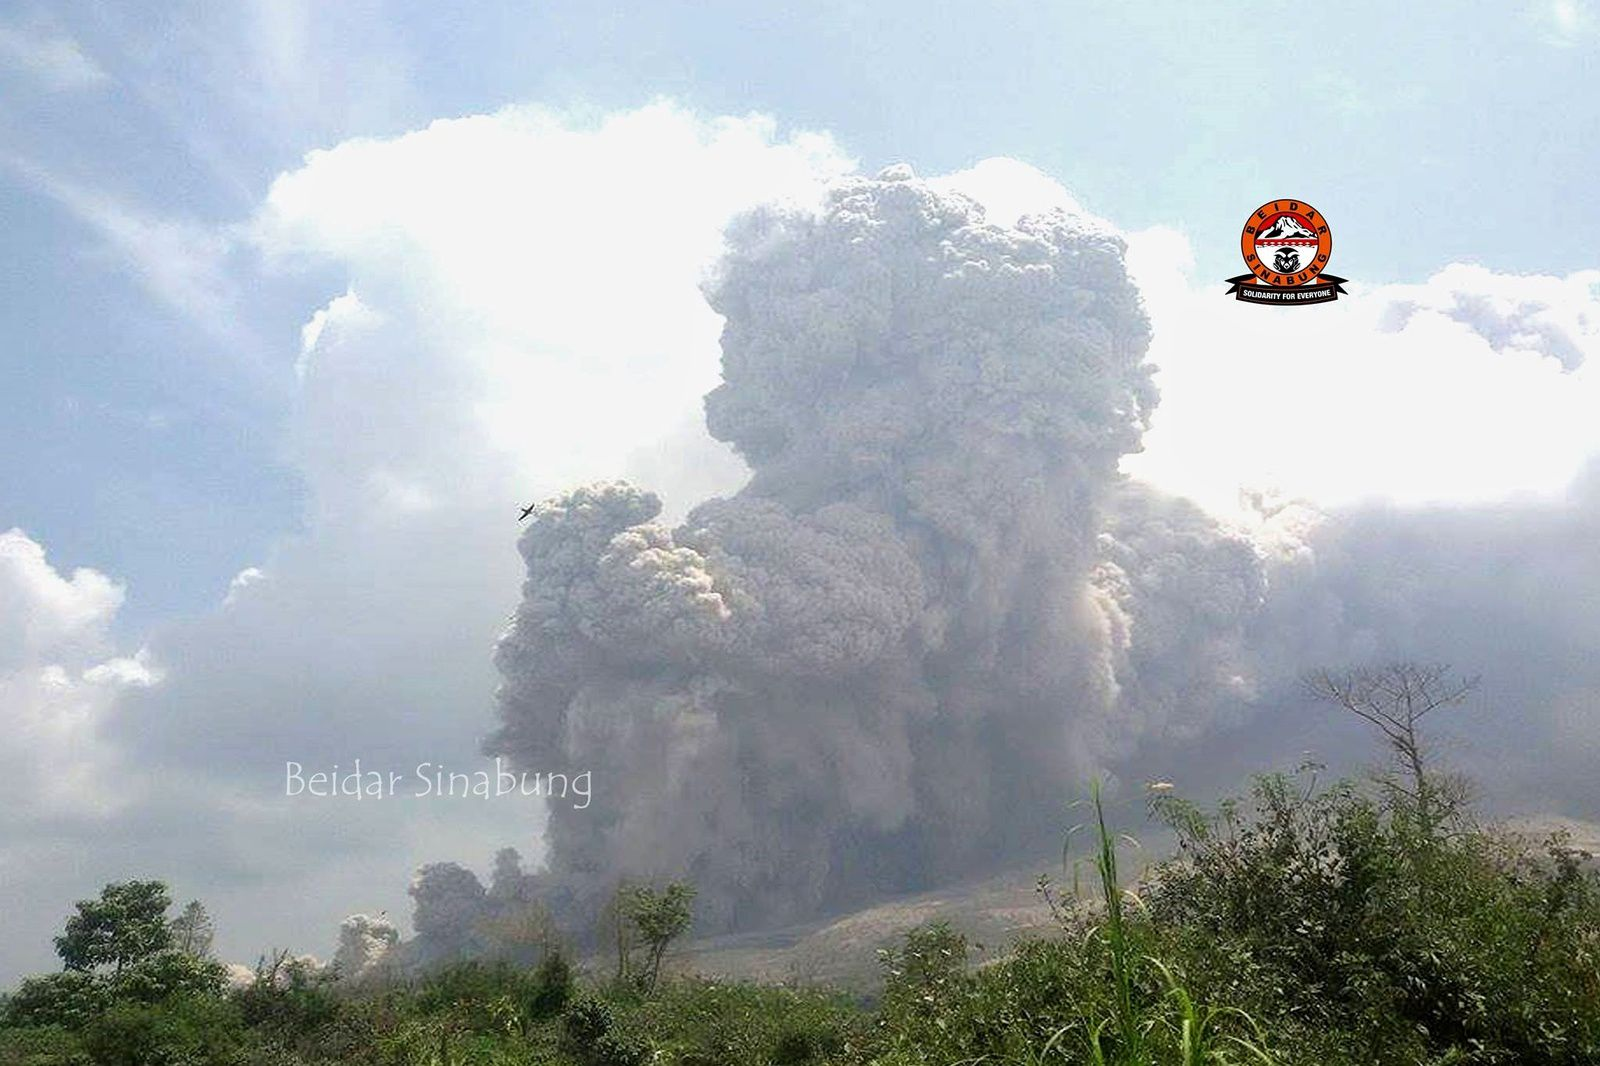 Sinabung - pyroclastic flow and co-pyroclastic cloud 08.31.2015 / 1:21 p.m. loc. - Photo Beidar Sinabung